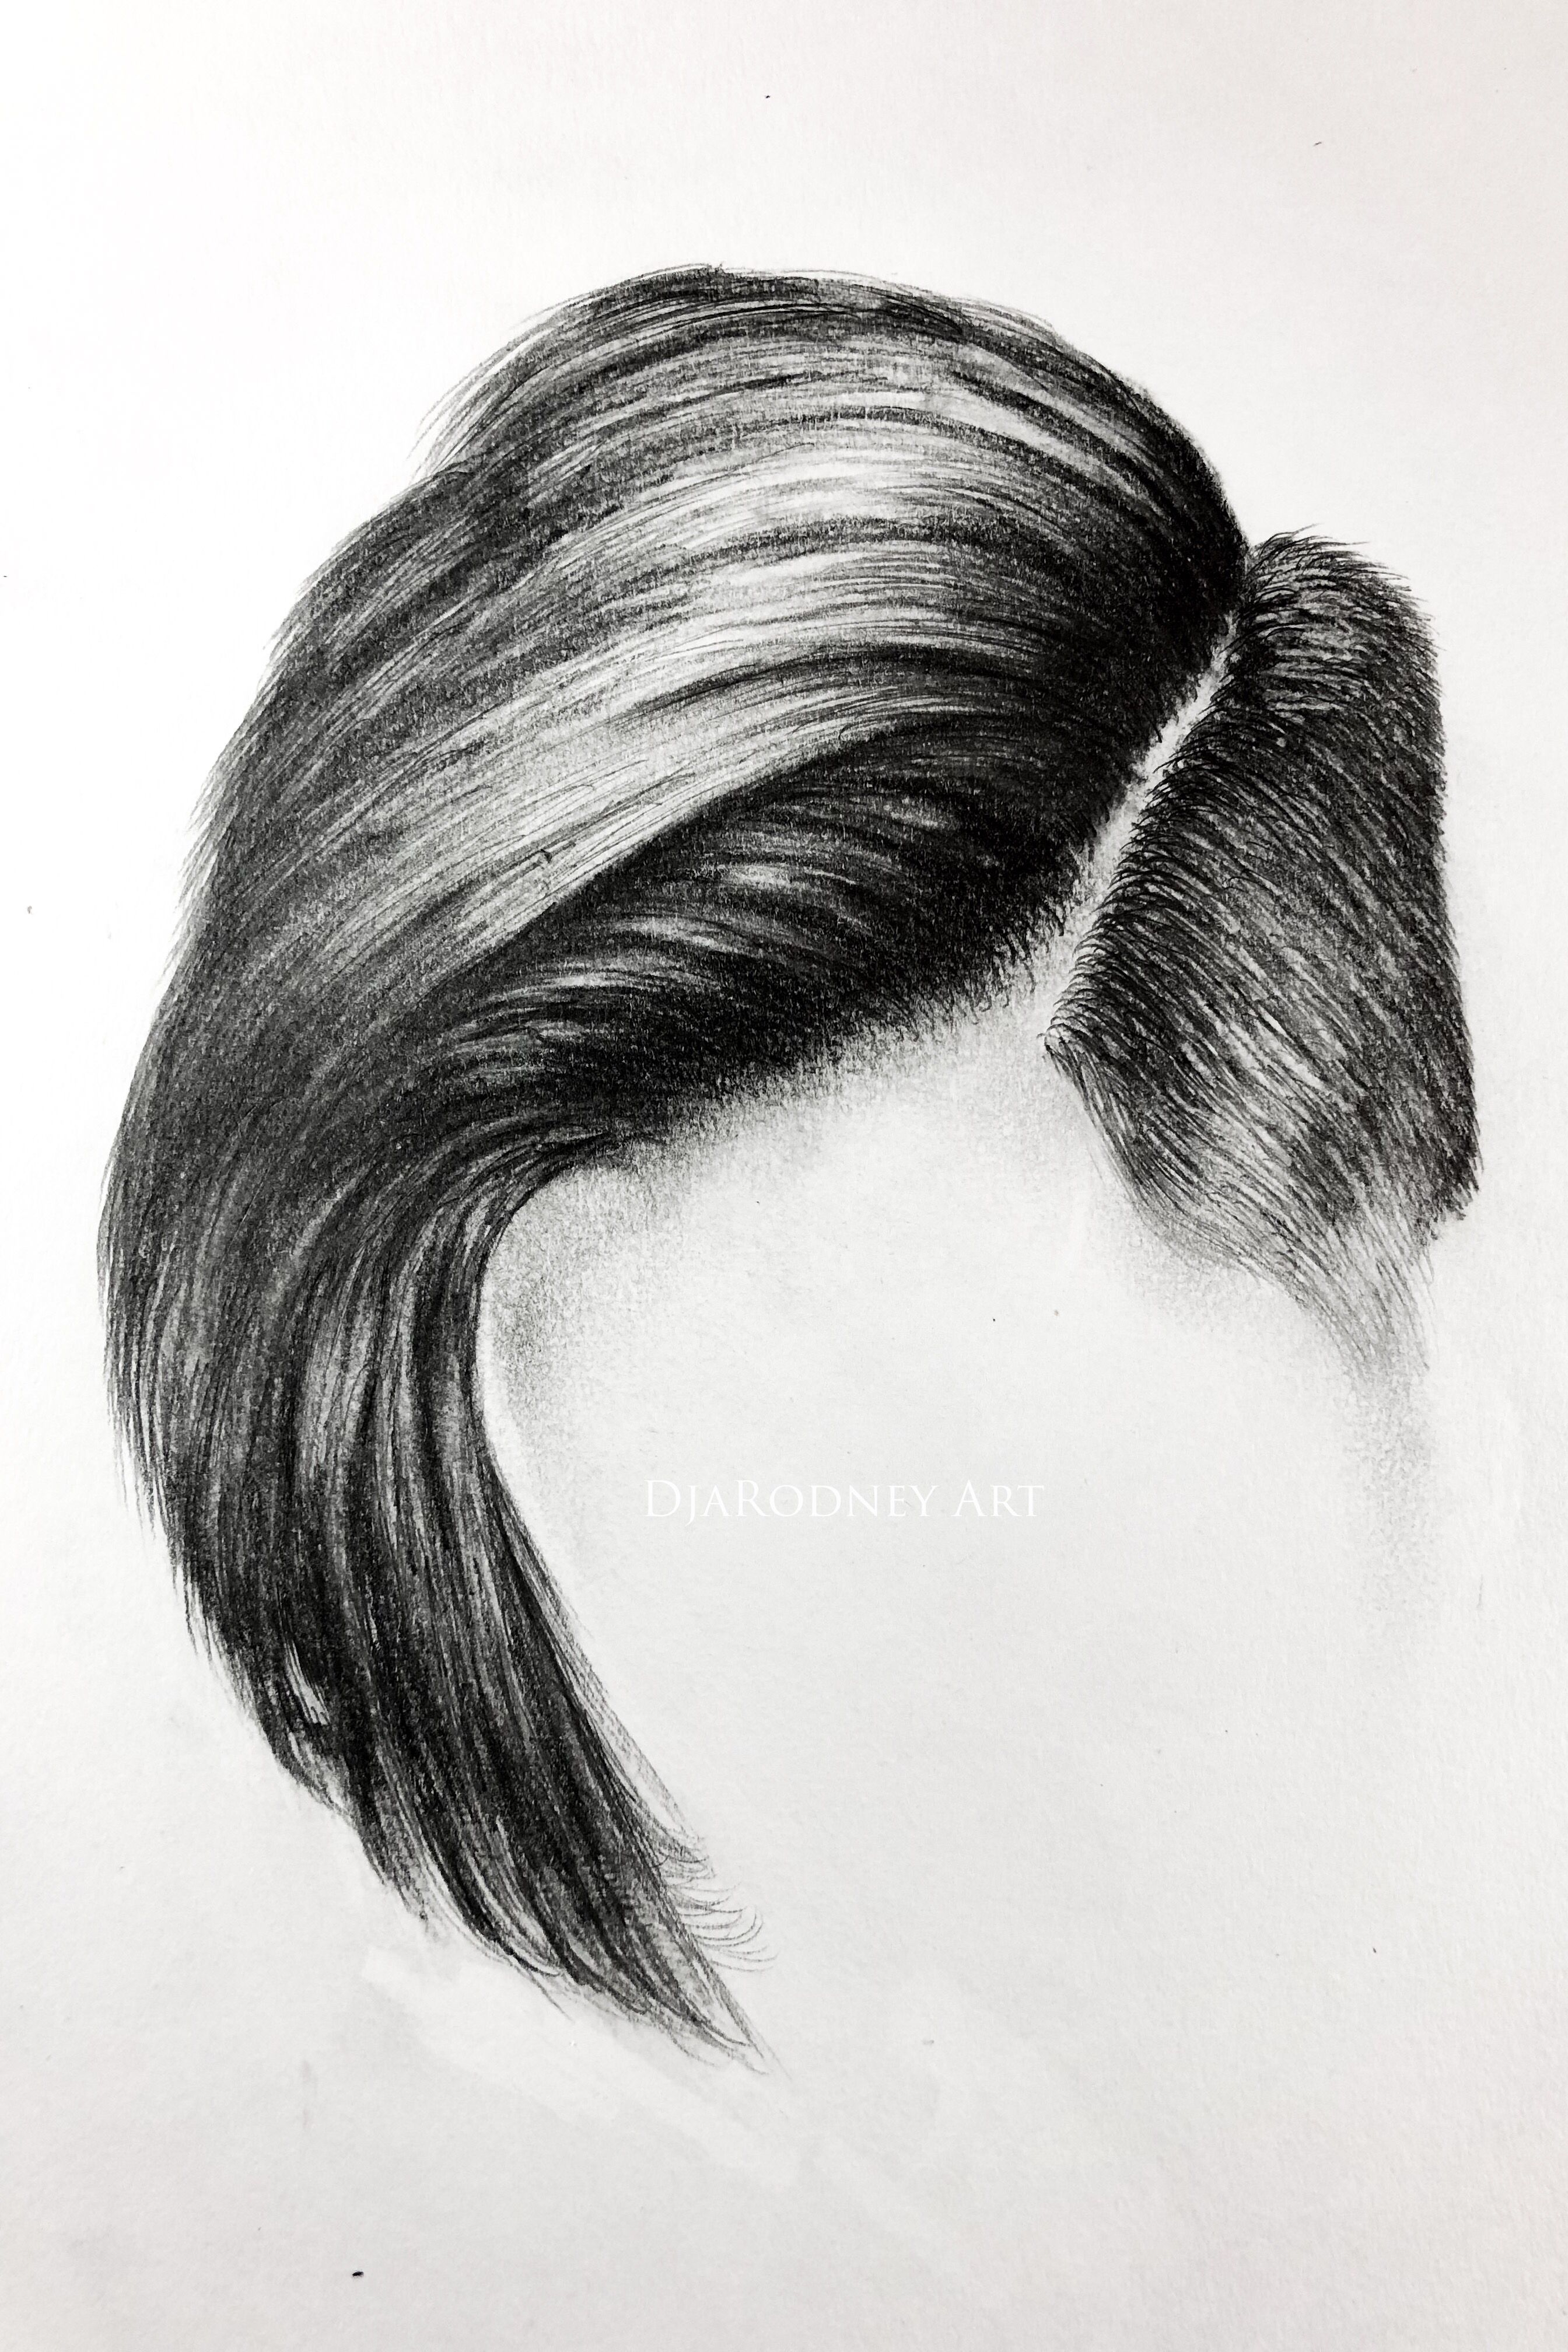 How To Draw Hair I Believe That Anyone Can Draw And My Goal Is To